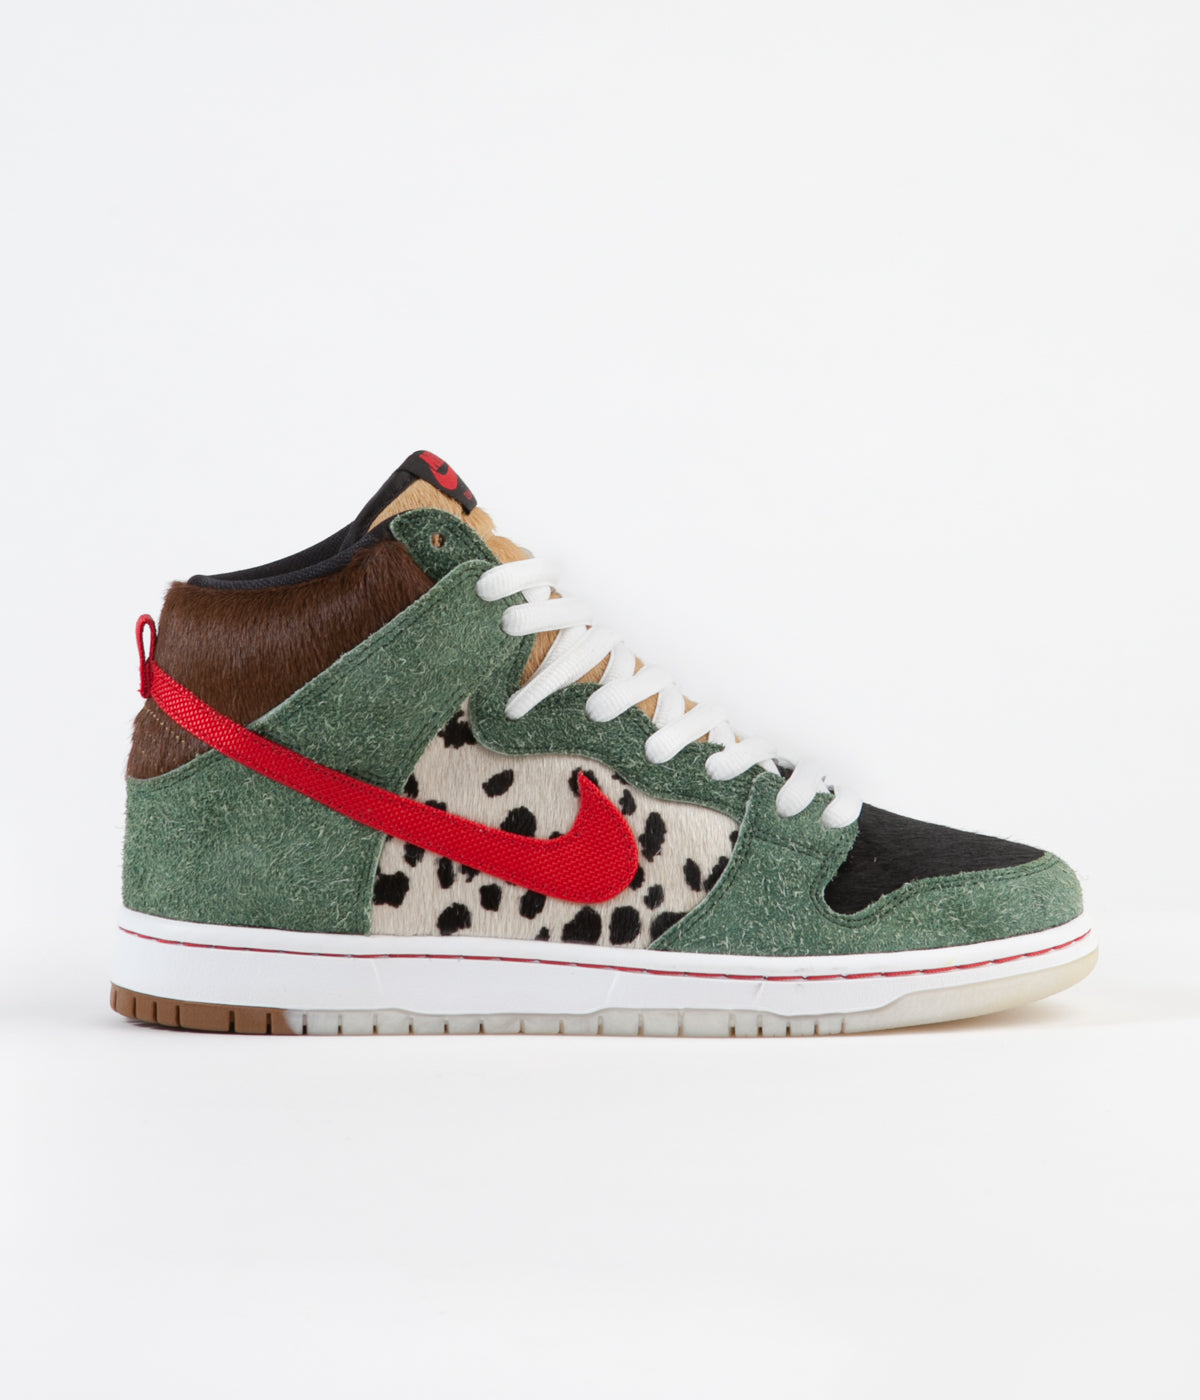 big sale 0de73 84c3a ... Nike SB Dunk High  Dog Walker  Shoes - Fir   University Red - Black ...